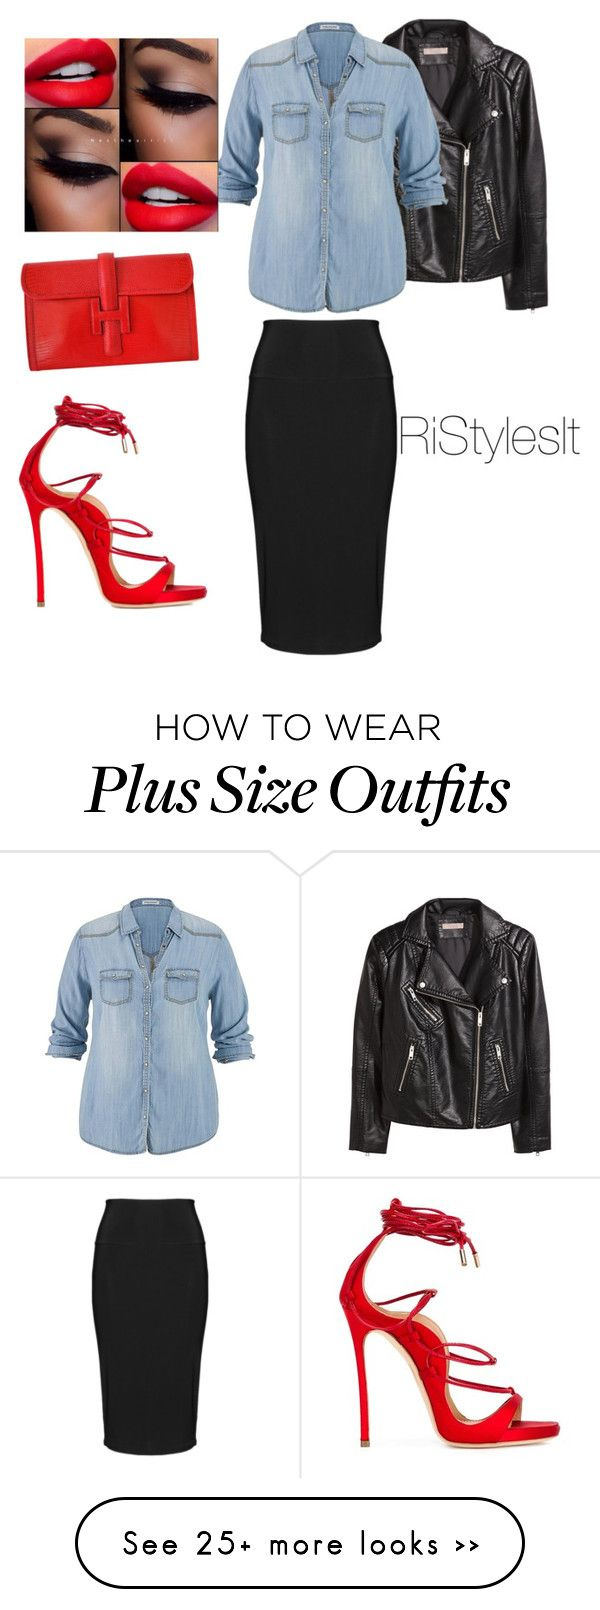 Pin by aparna menon on casual looks i love pinterest dsquared